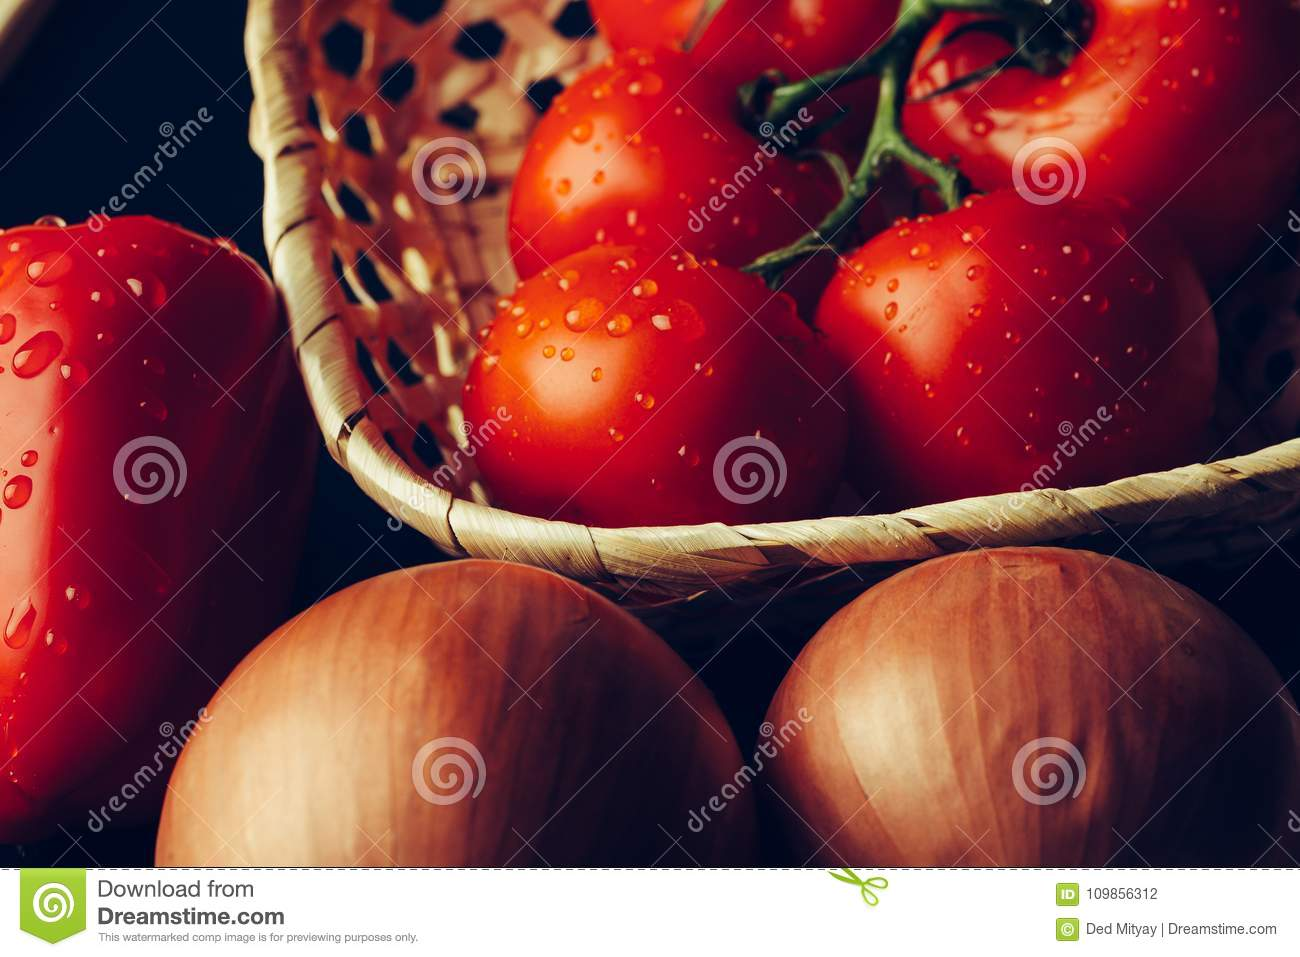 Fresh wet tomatoes in drops of water, golden onion, bell pepper on dark background